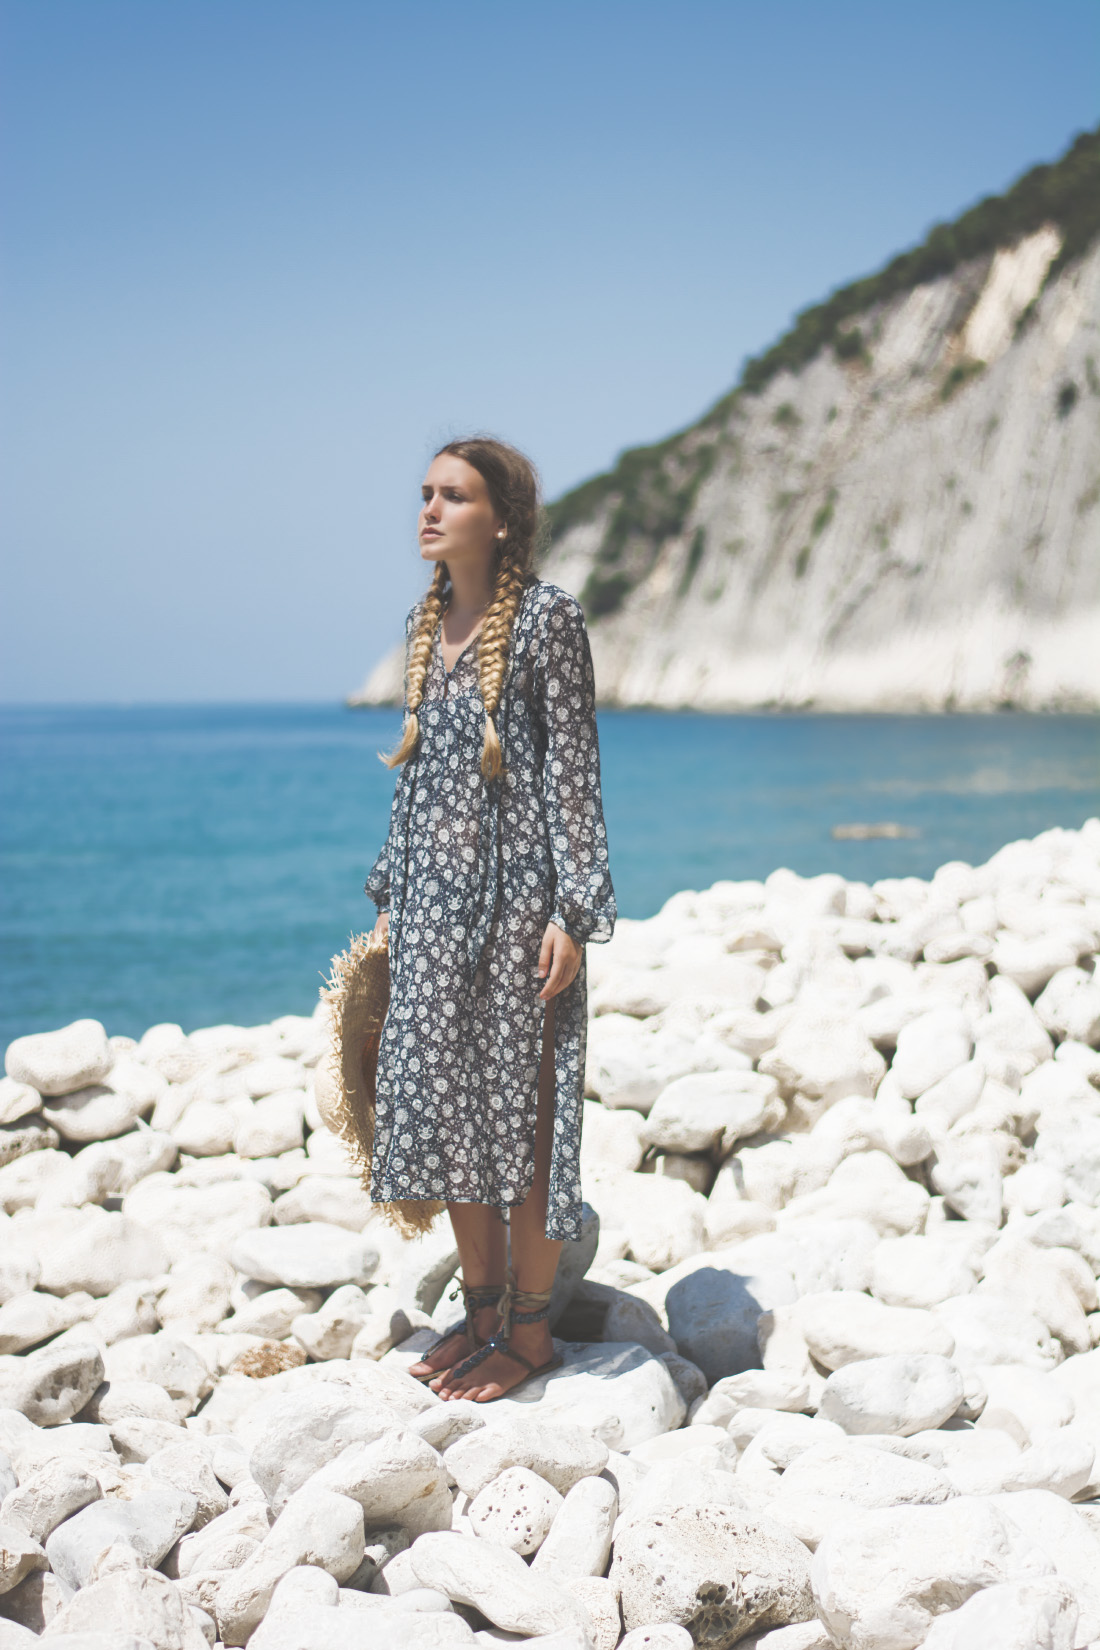 beautiful cliffs - beach girl - turquise water - outfit inspiration tunics - via Fleur de Mode